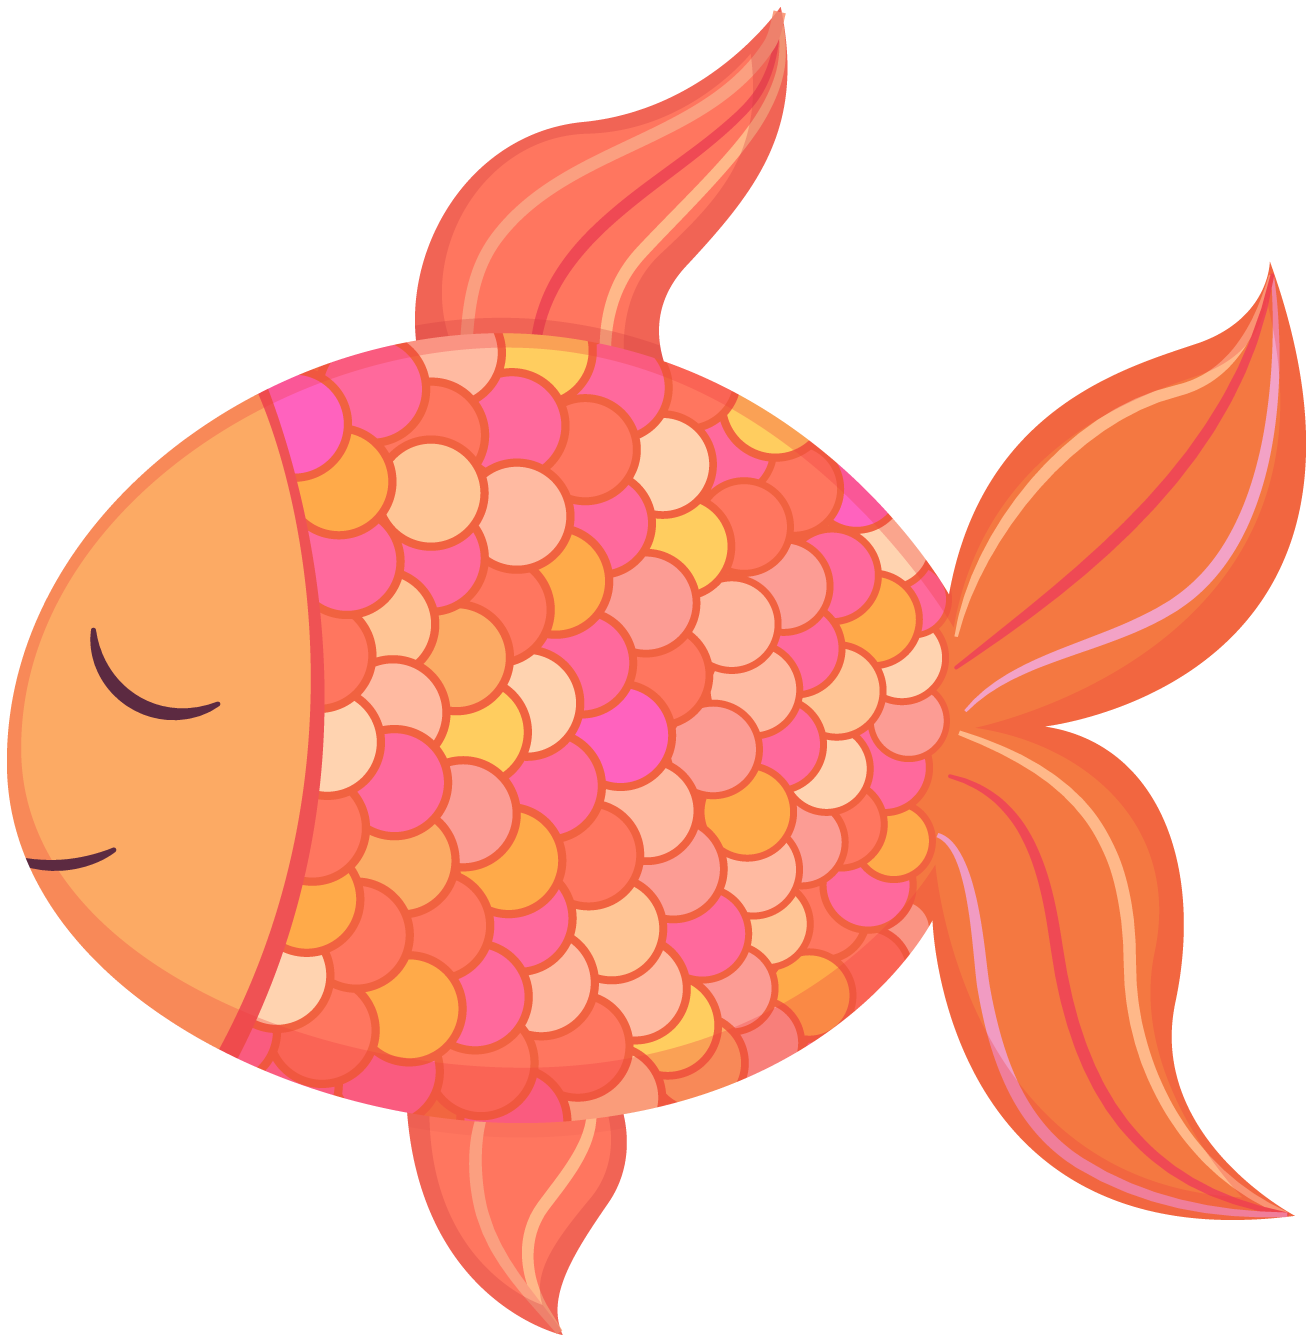 Baby fish in diaper clipart clip art free stock Photo by @martamota - Minus | CLIPART | Pinterest | Clip art, Stone ... clip art free stock